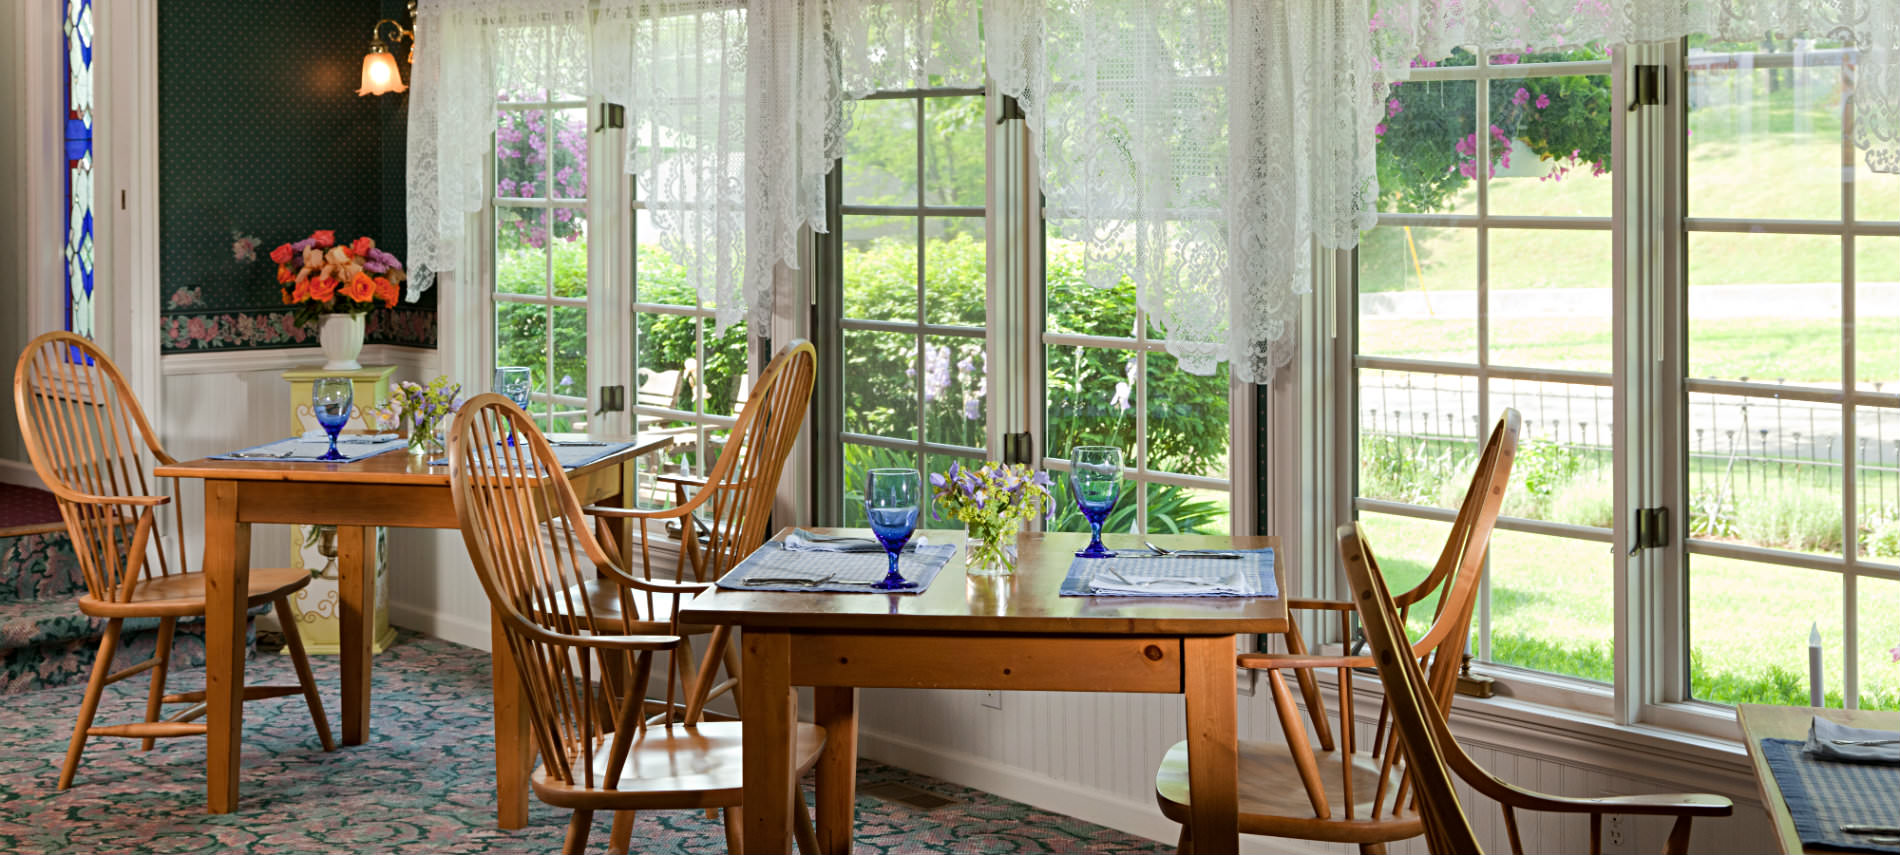 Wooden dining tables and chairs set for breakfast with blue glasses, White lace curtains. green shurbs, blue flowered rug.